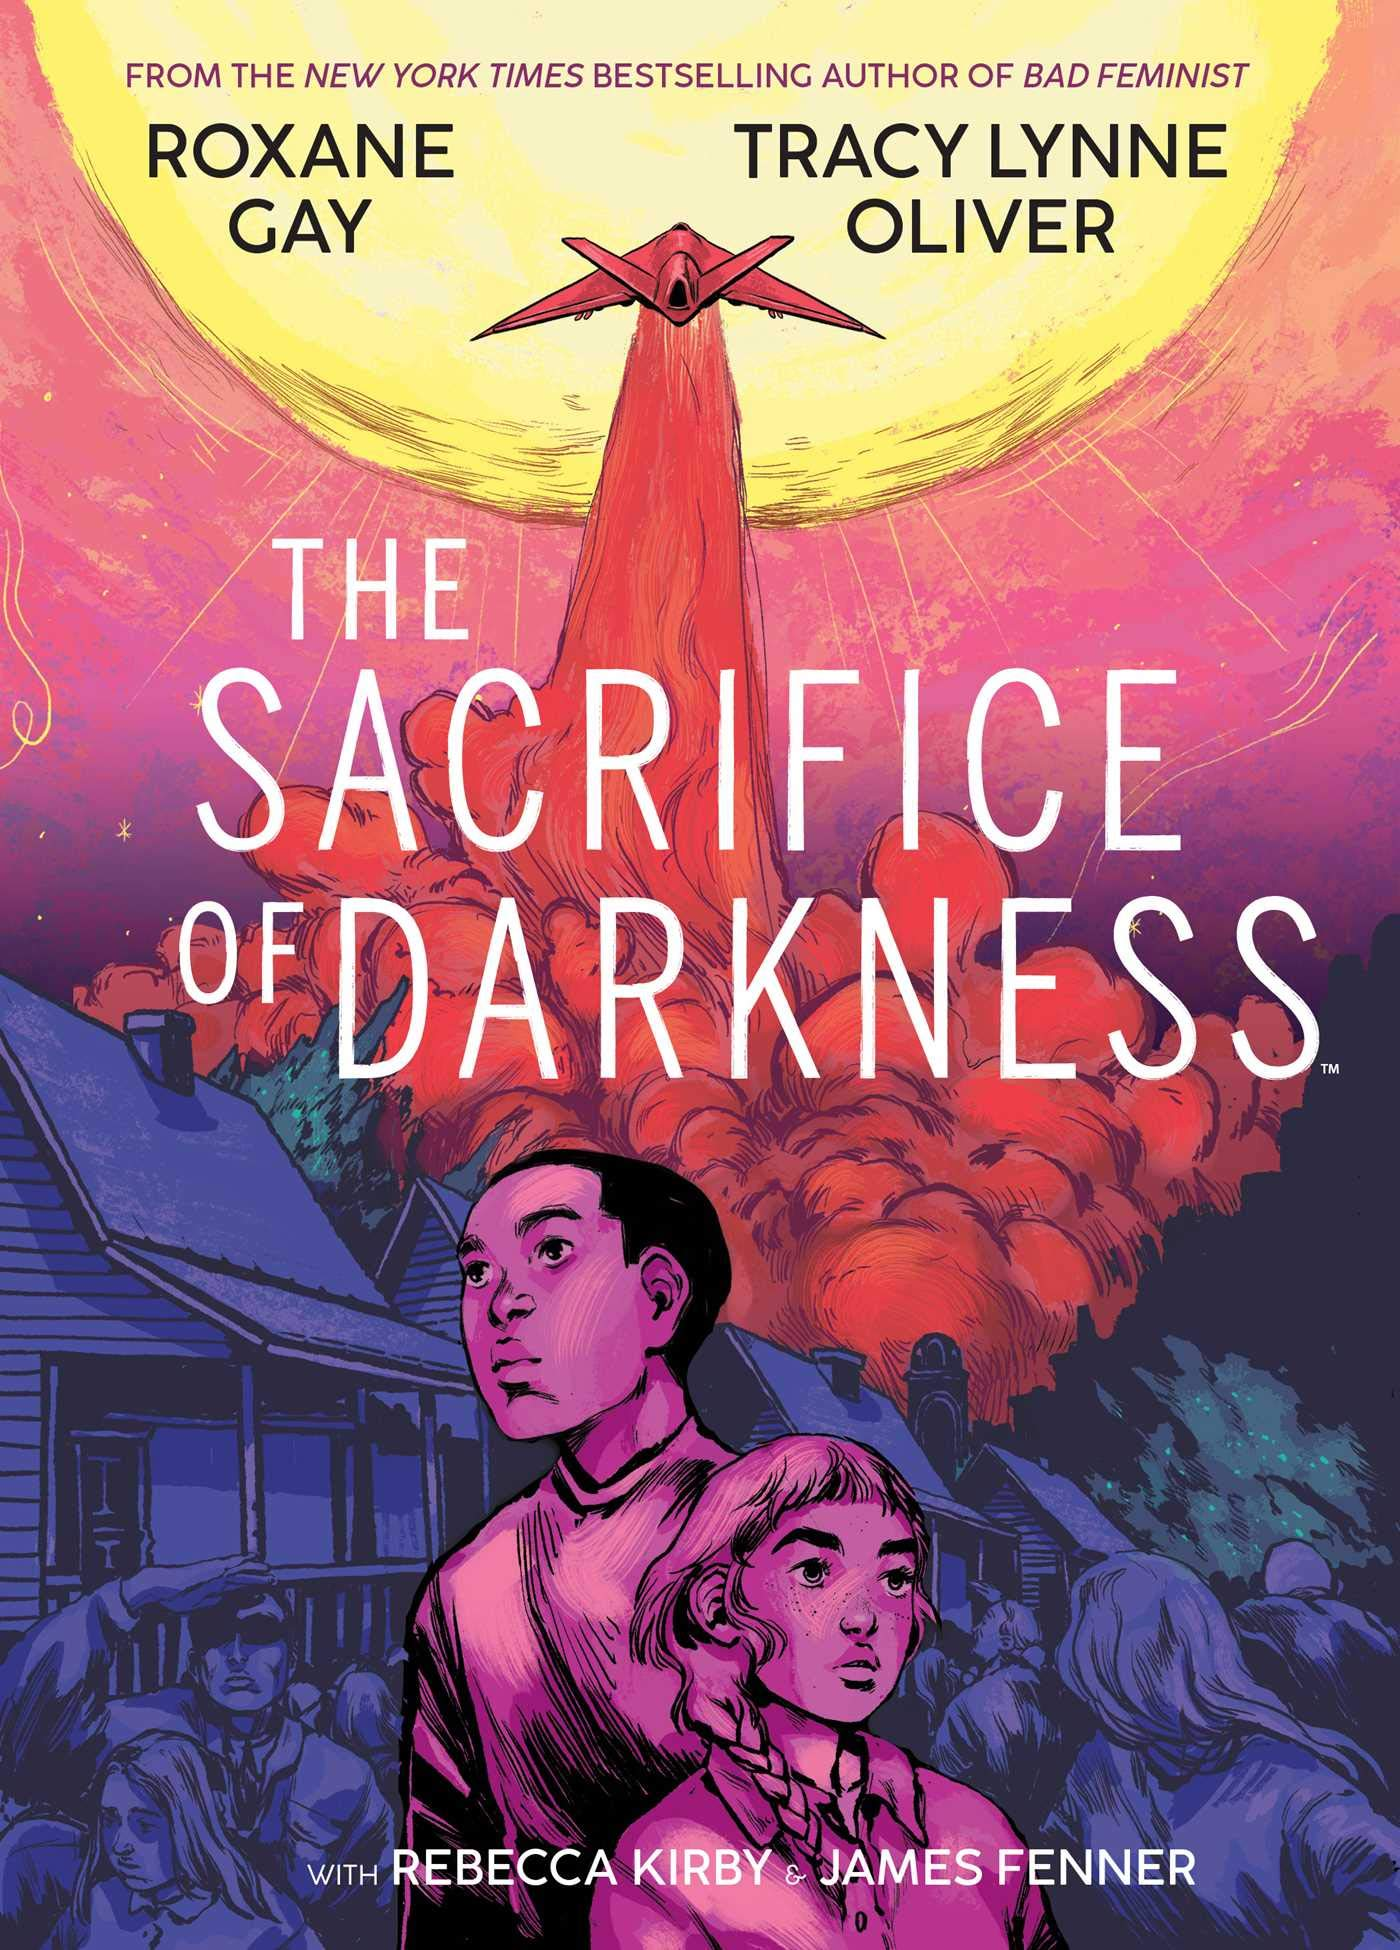 The Sacrifice of Darkness by Roxane Gay and Tracy Lynne Oliver